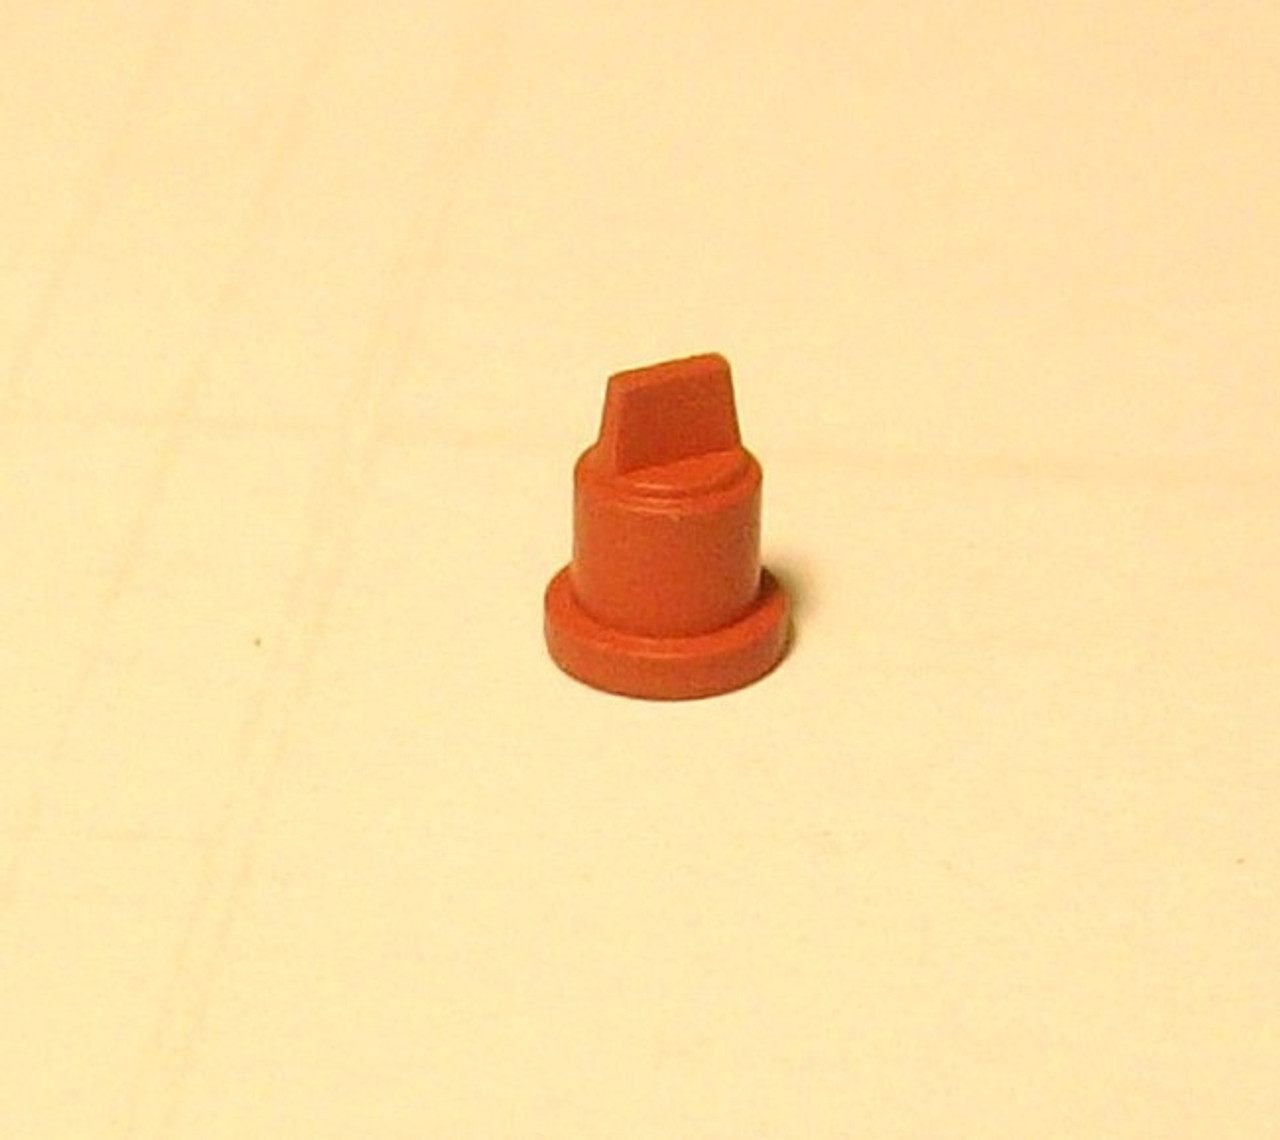 Oil Tank Duck Bill Check Valve for Homelite XL, XL2, Super 2, 150, 240, 245, 69451, Made In USA, chainsaw chain saw